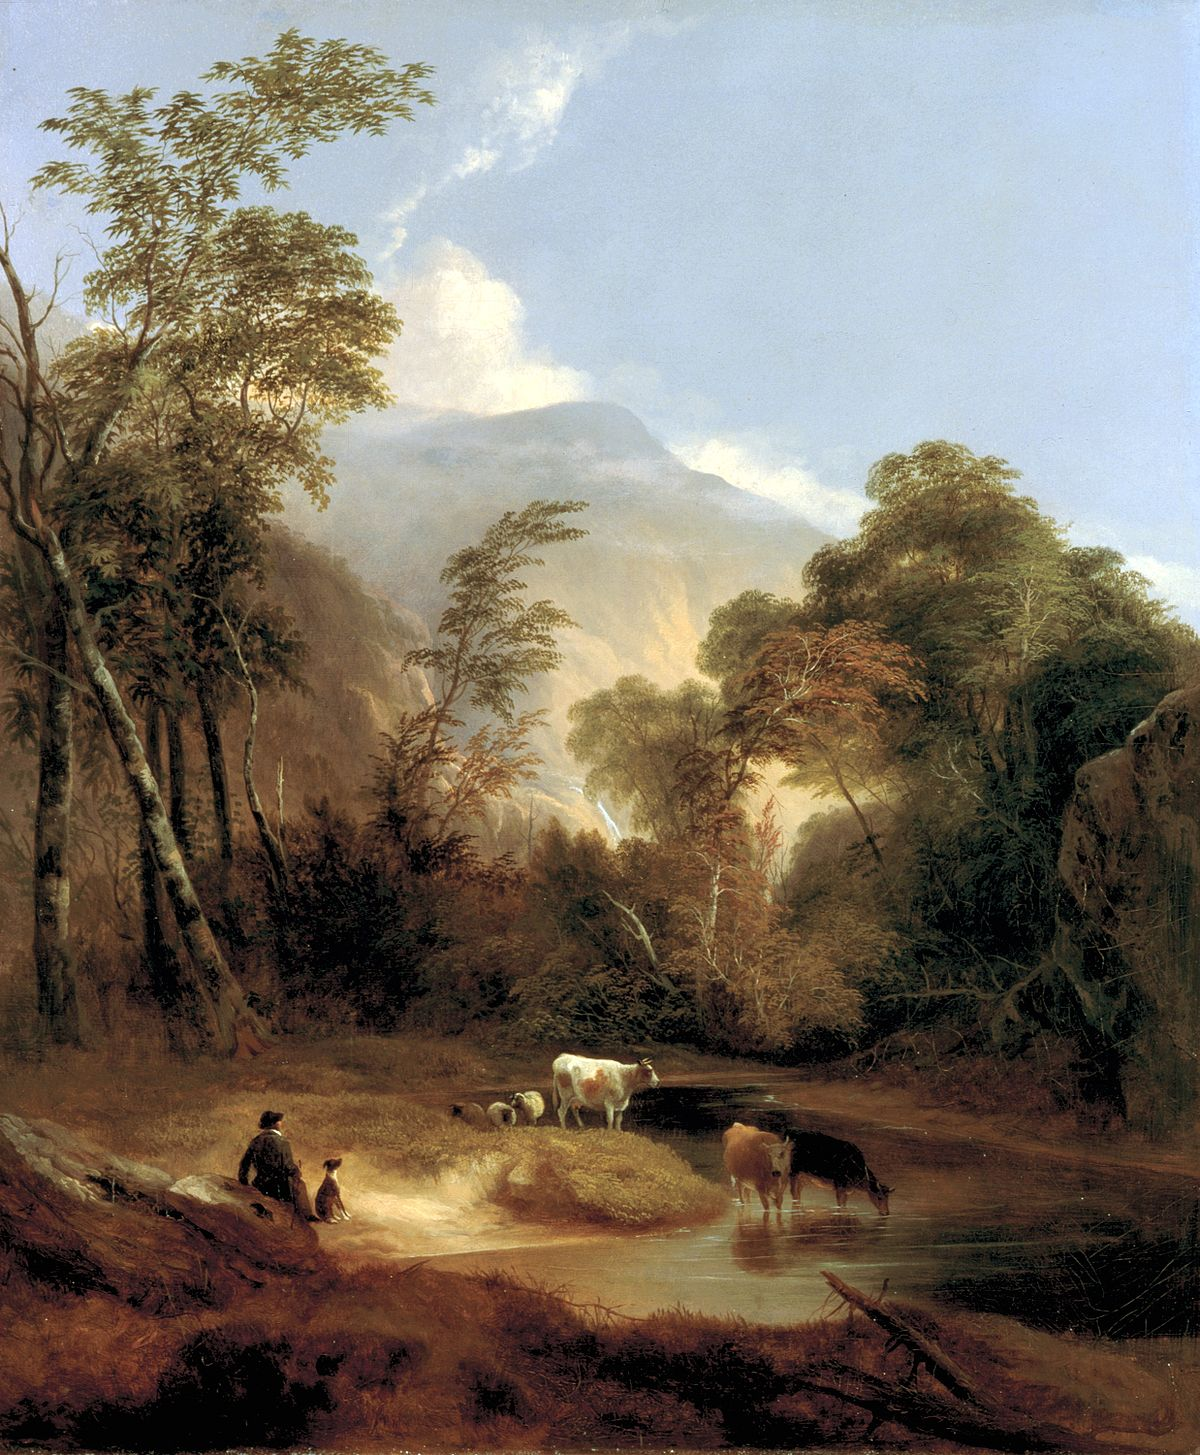 The pastoral